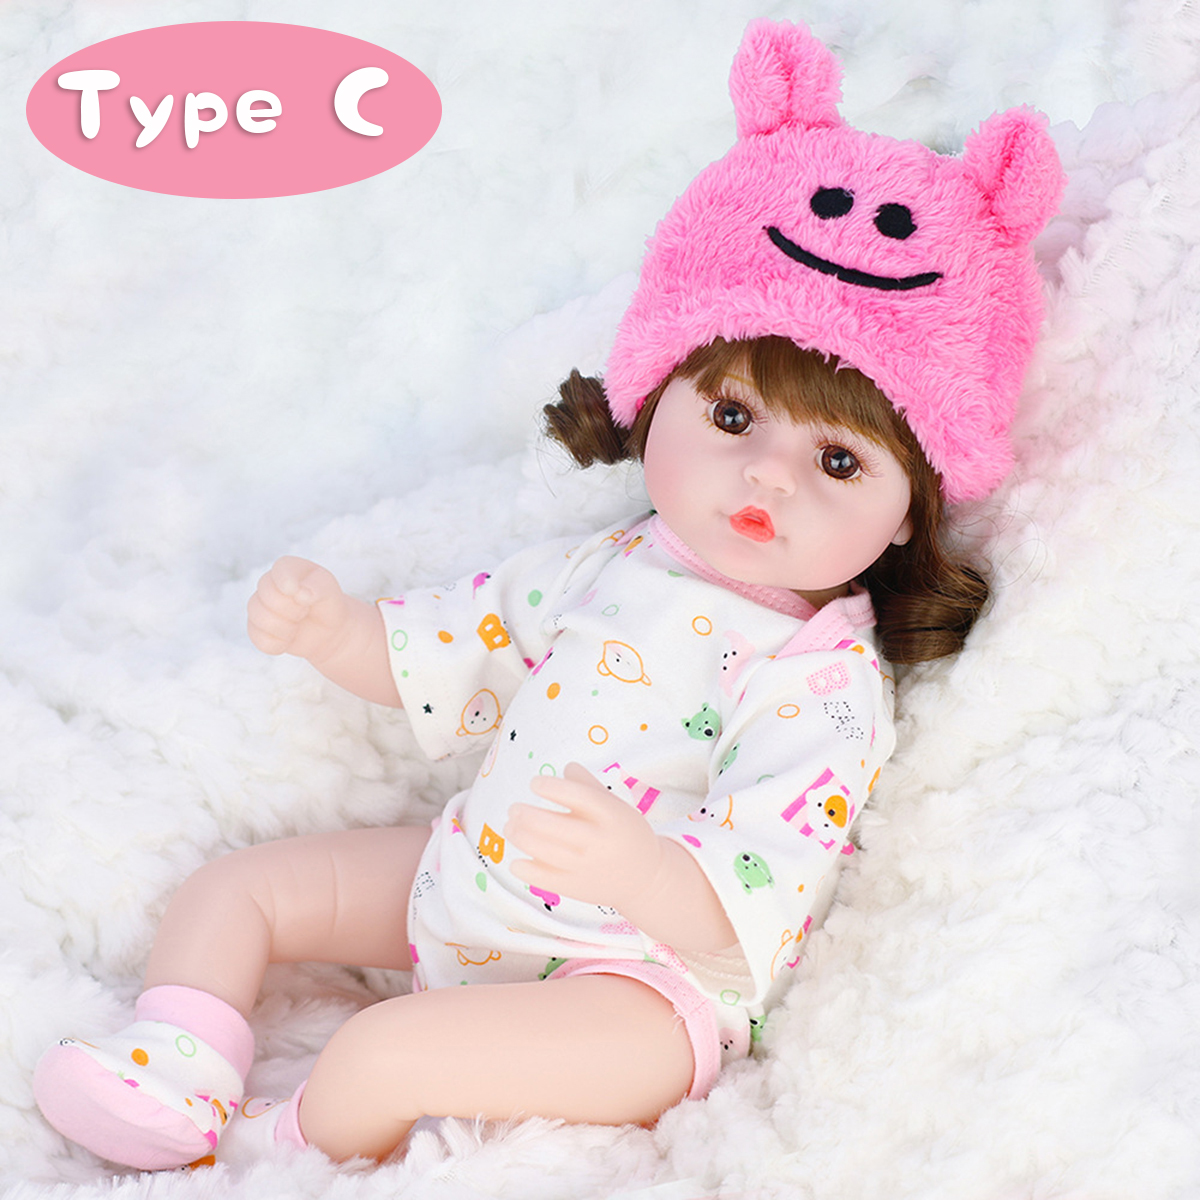 42CM Soft Silicone Vinyl Acrylic Eye Rotatable Limbs Cute Lifelike Realistic Reborn Baby Doll Toy for Kids Gift